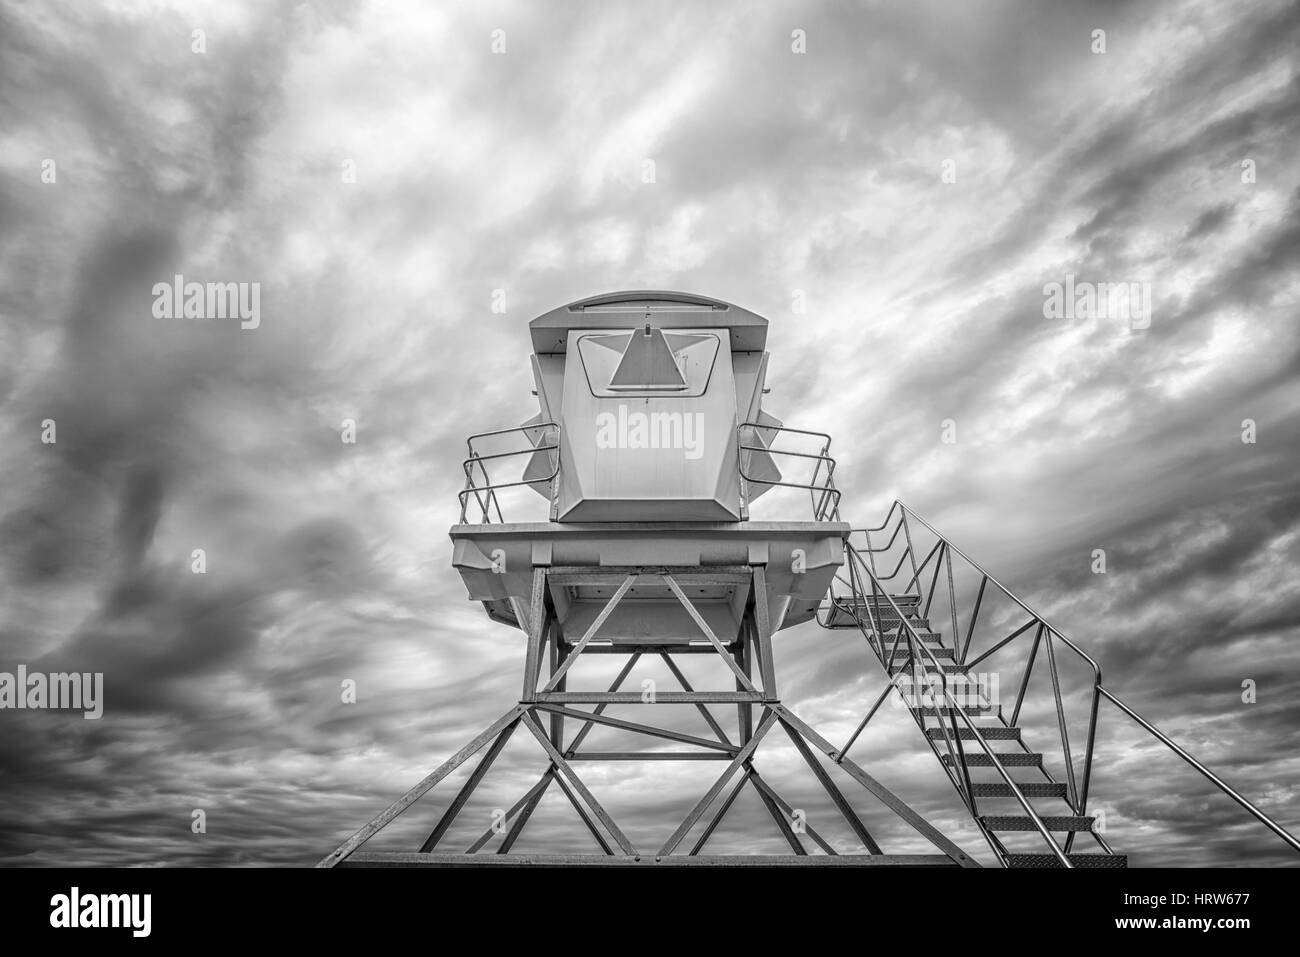 Low angle view of a lifeguard tower against a cloudy sky. Black and white image. - Stock Image